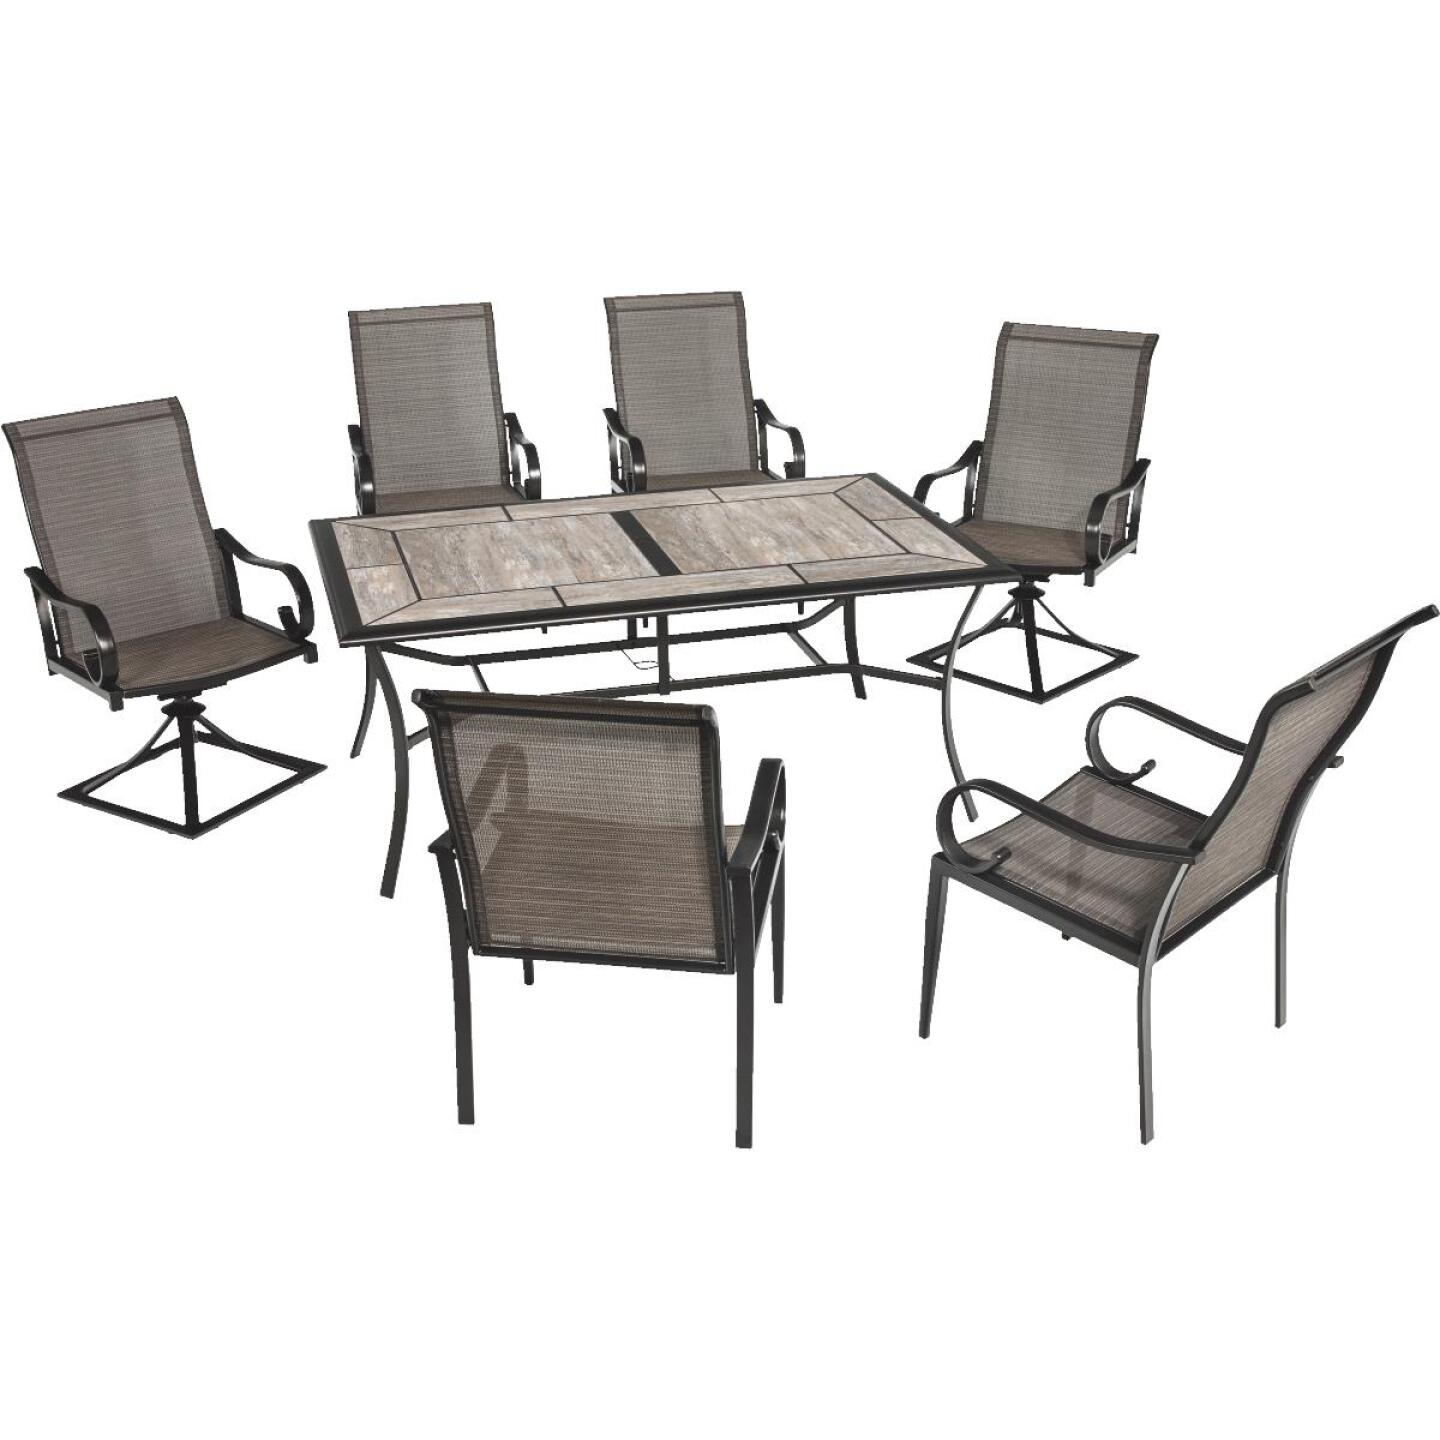 Outdoor Expressions Berkshire 7-Piece Dining Set Image 125